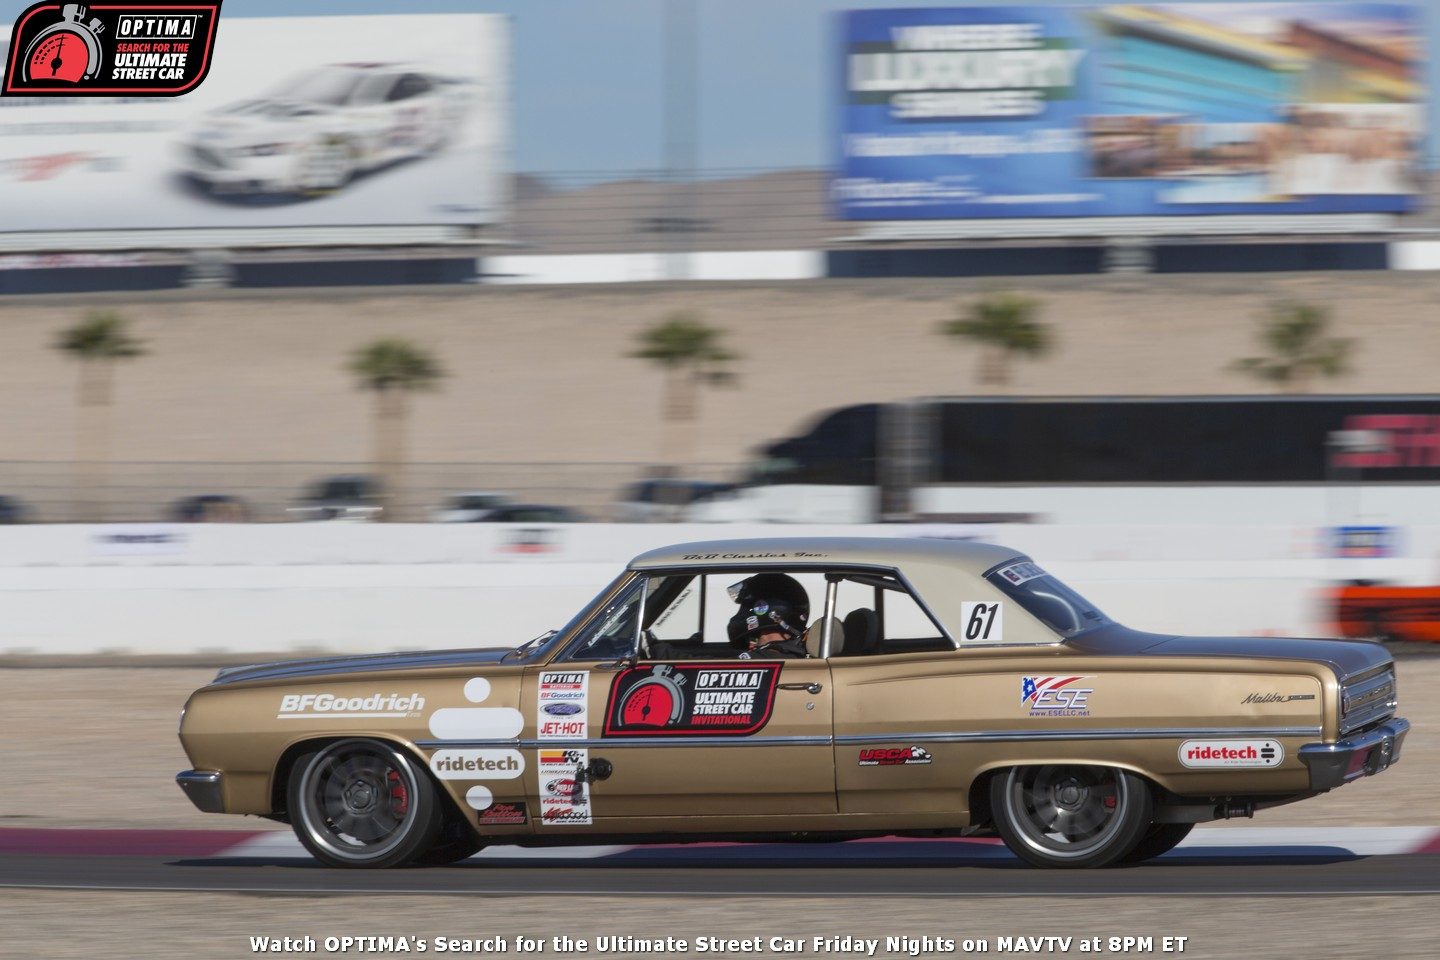 p-Aaron-Oberle-1965-Chevrolet-Chevelle-OPTIMA-Ultimate-Street-Car-Invitational-2014-BFGoodrich-Hot-Lap-Challenge_160.jpg